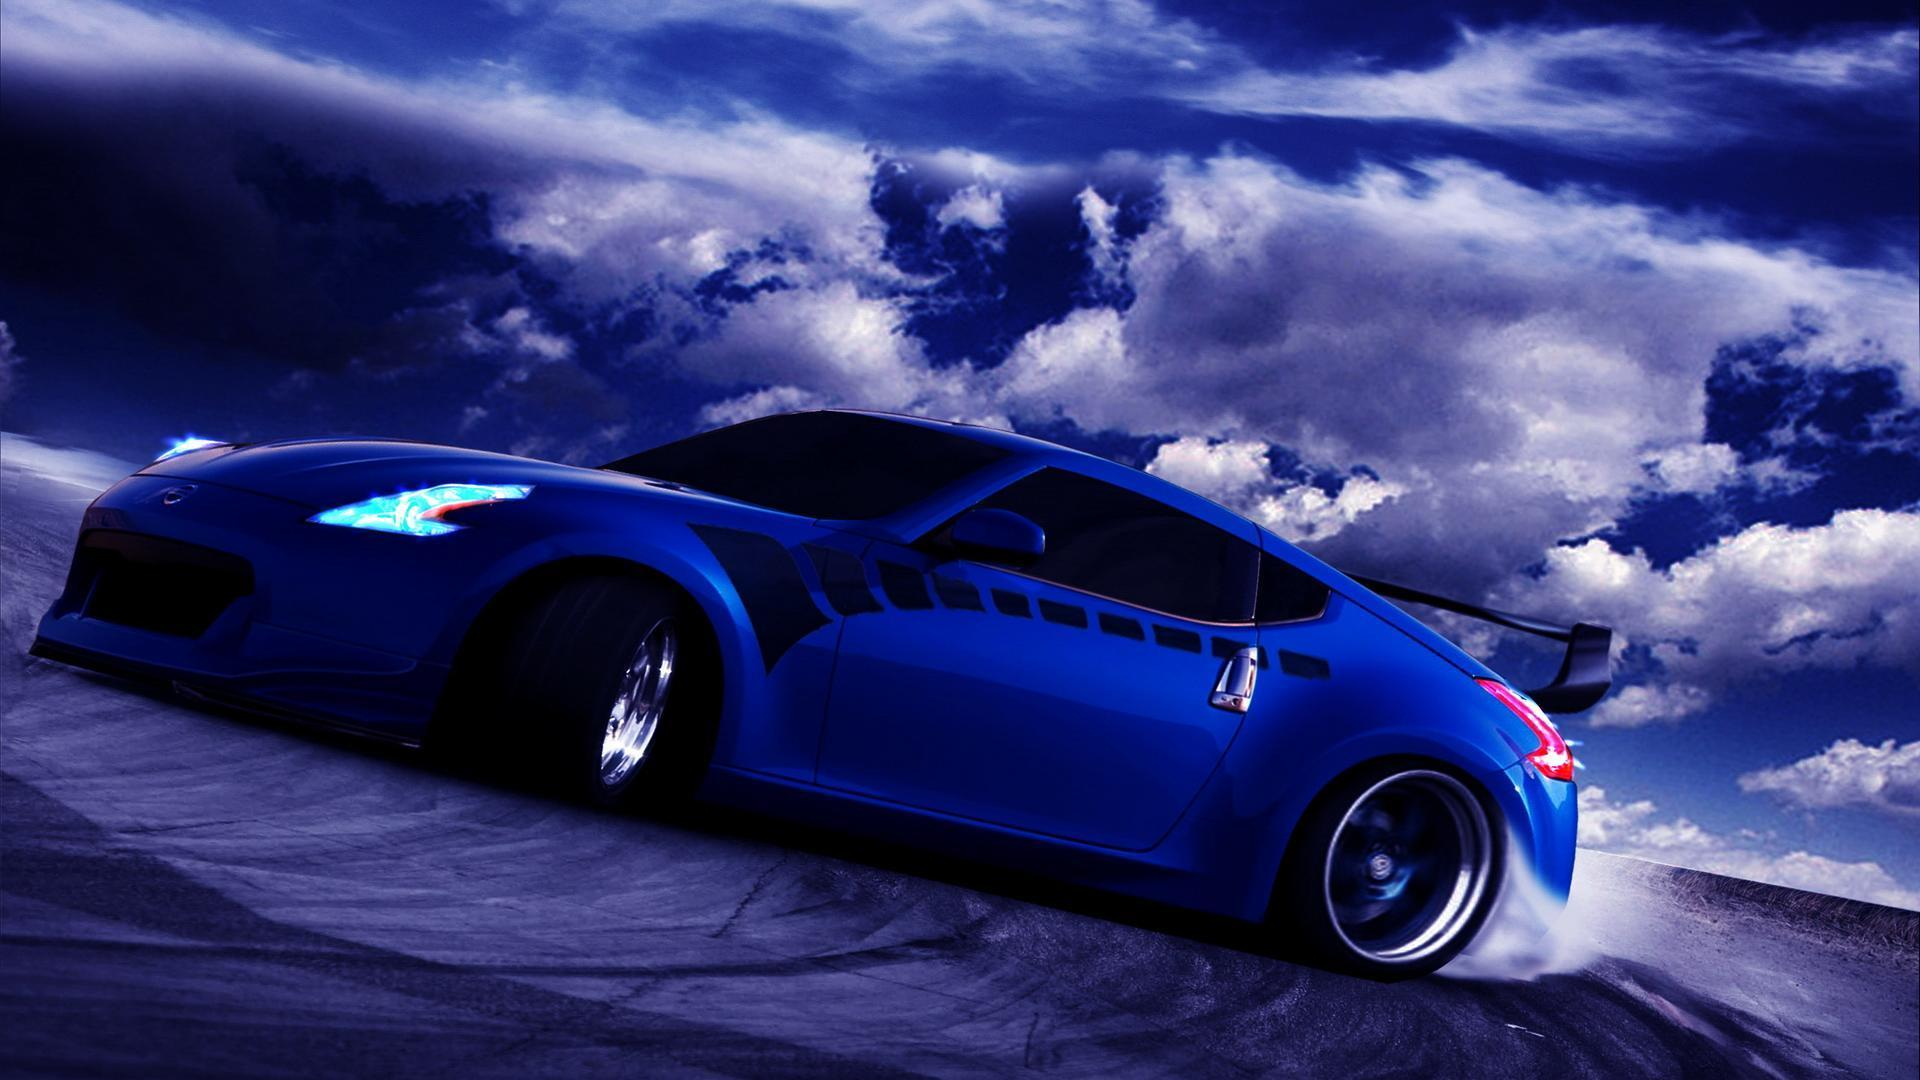 Blue Car Wallpapers 1920x1080